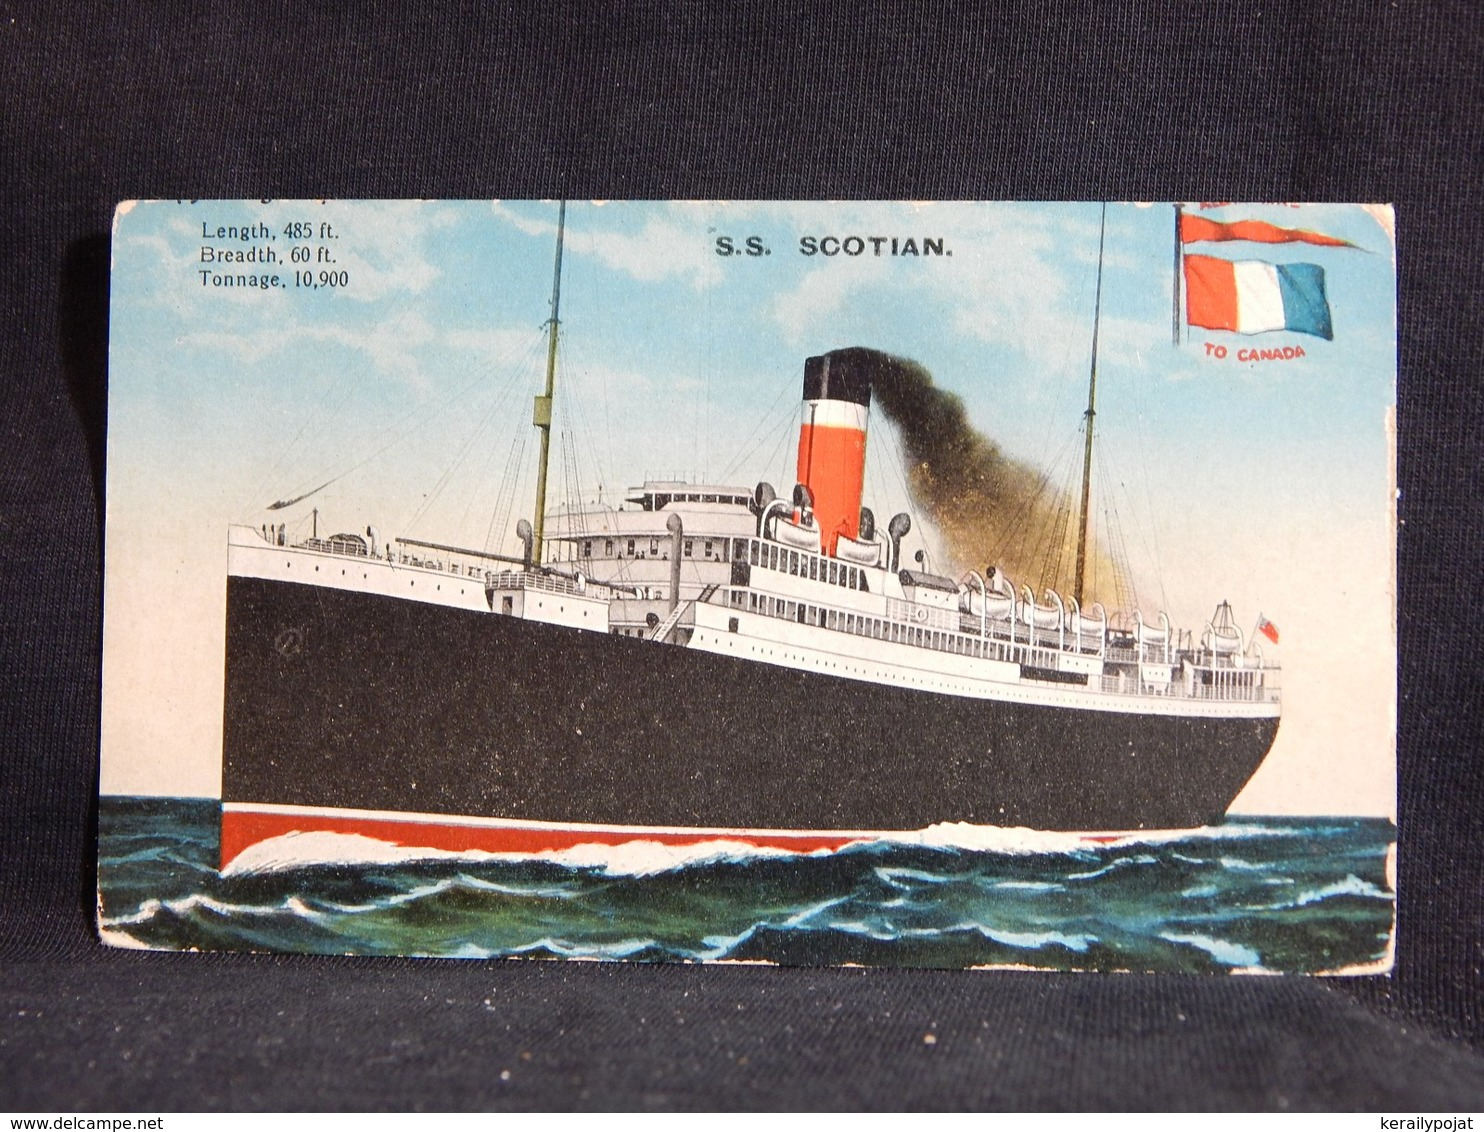 Steamer S.S. Scotian__(22762) - Paquebote